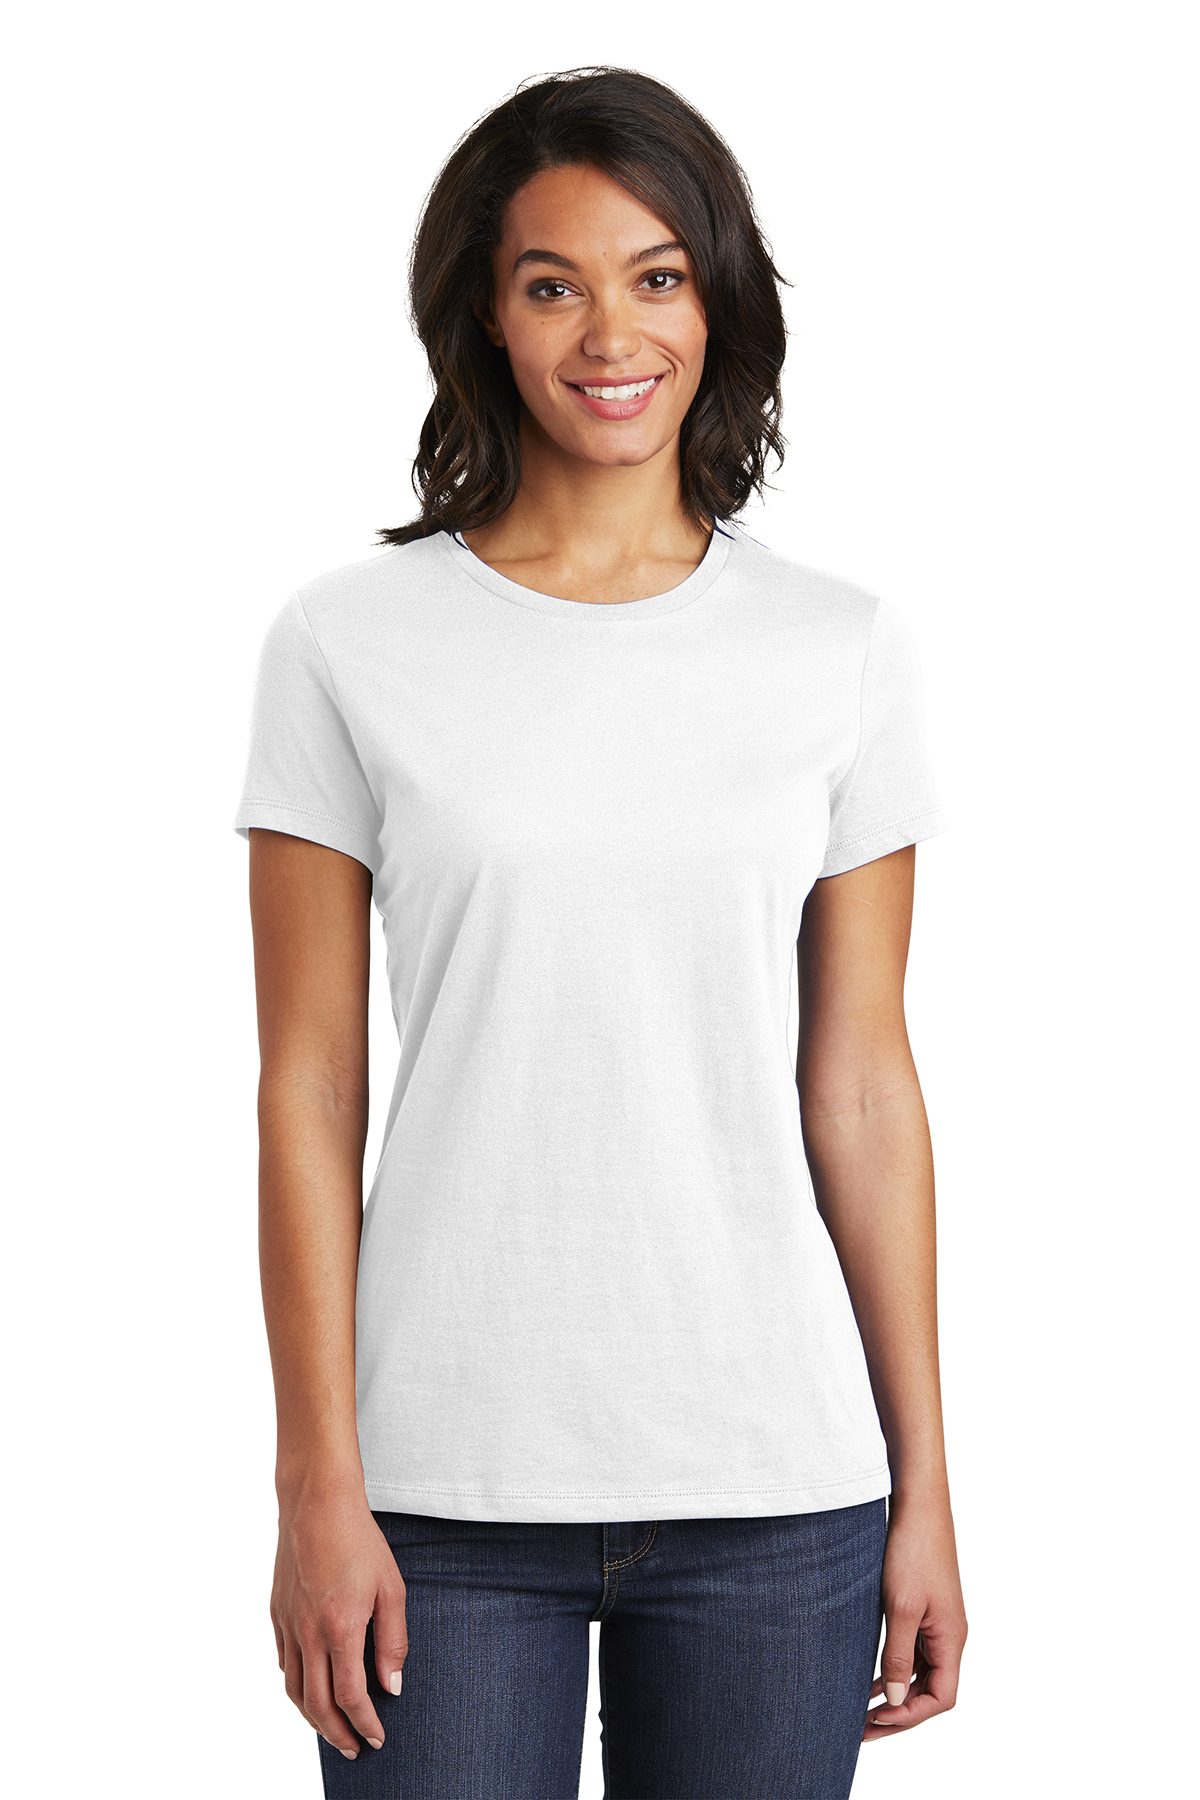 District DT6002 - Women's Very Important Tee